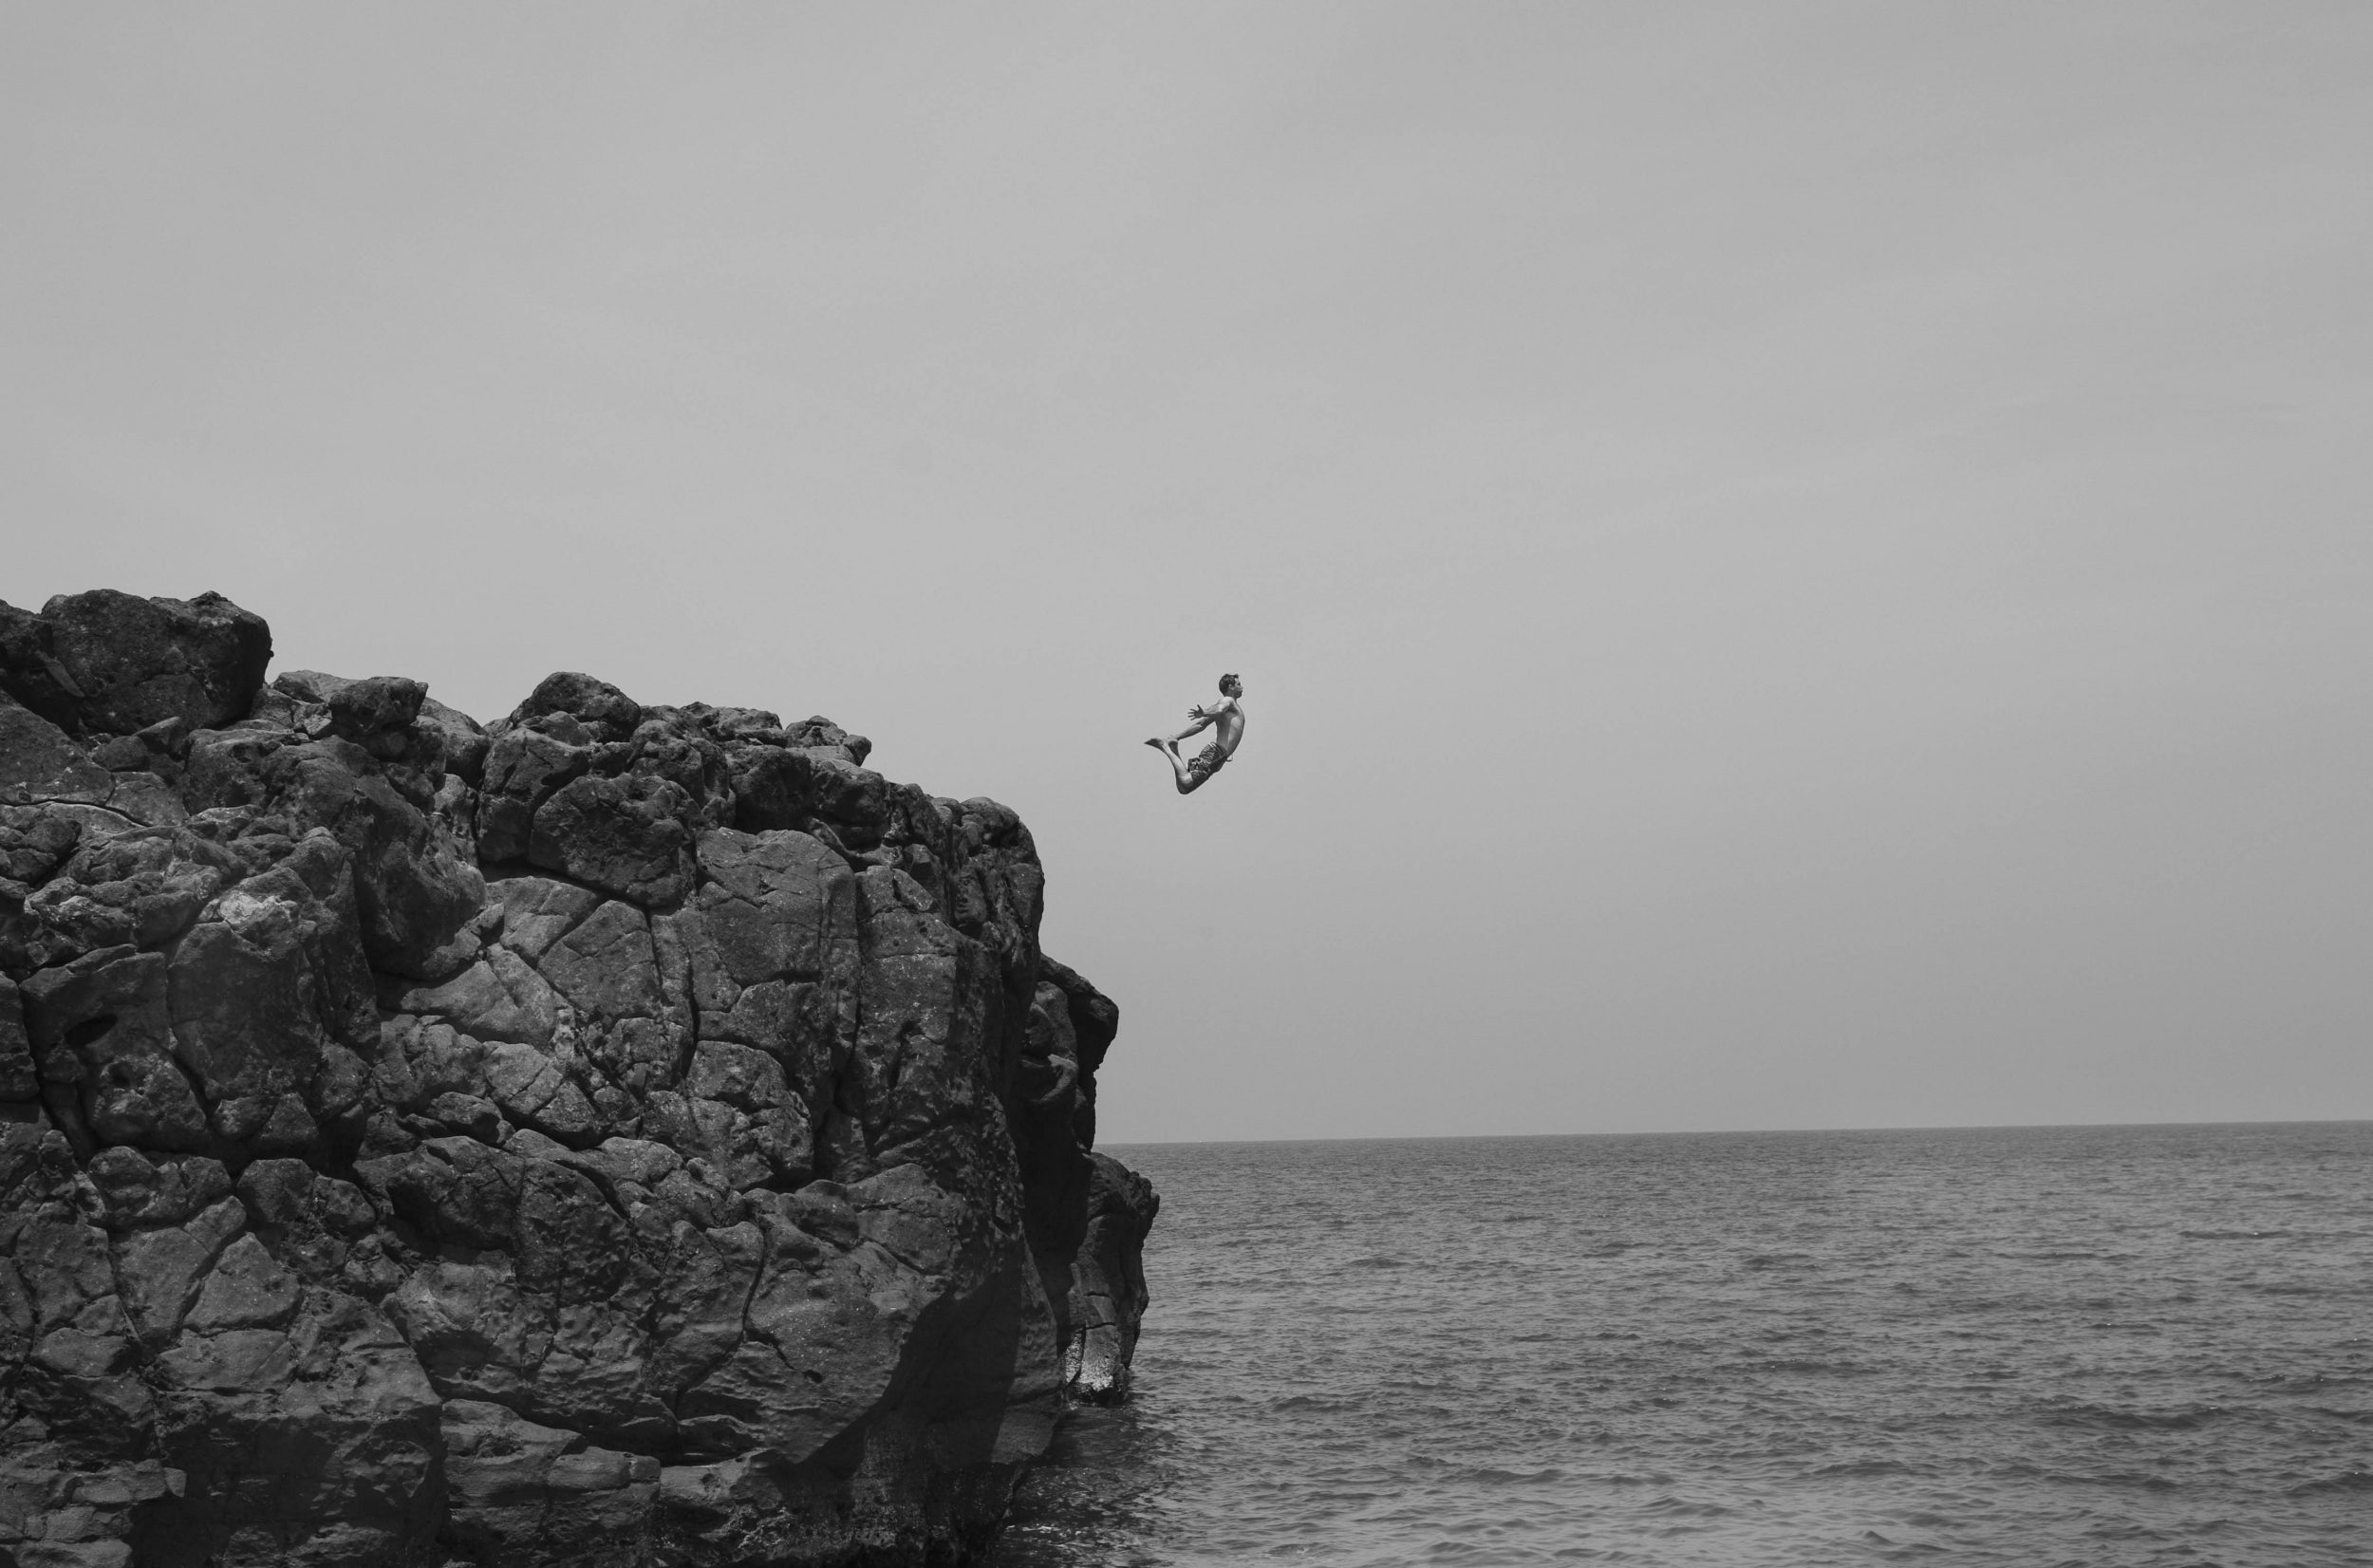 Thai Neave, travel photographer, jumps off a rock